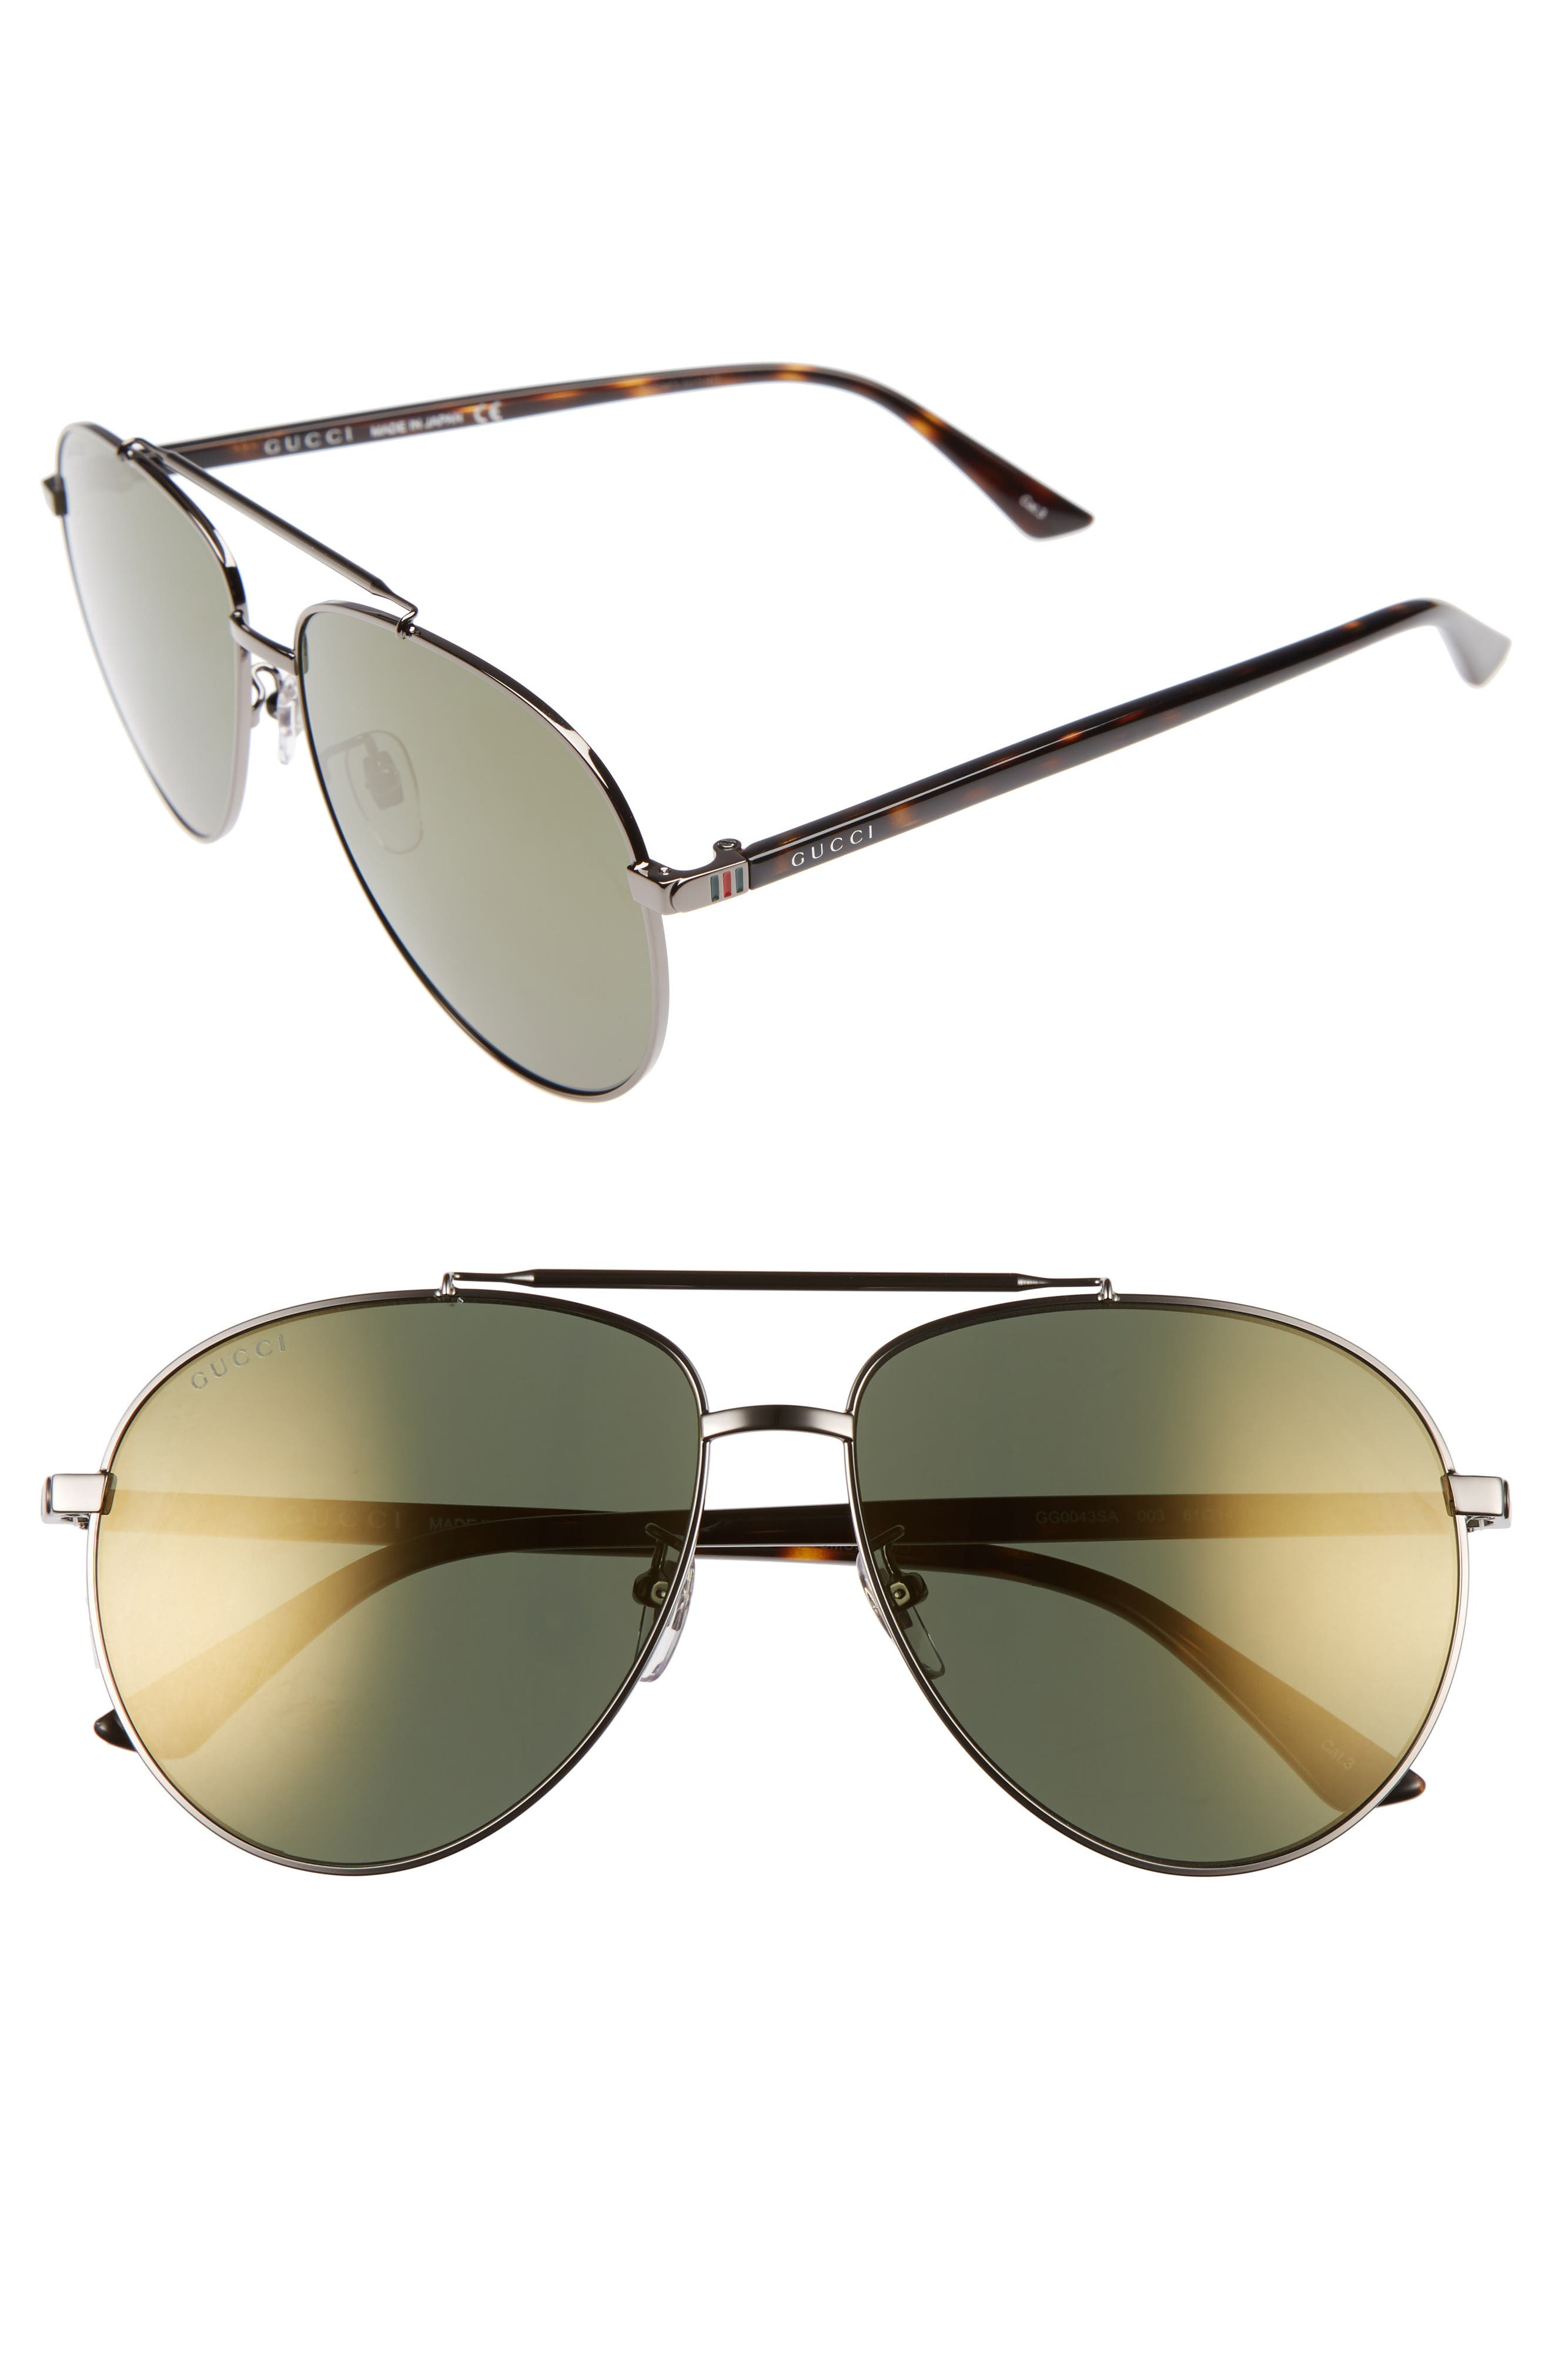 Retro Web 61mm Aviator Sunglasses,                         Main,                         color, RUTHENIUM W.MIRROR GUN LENS